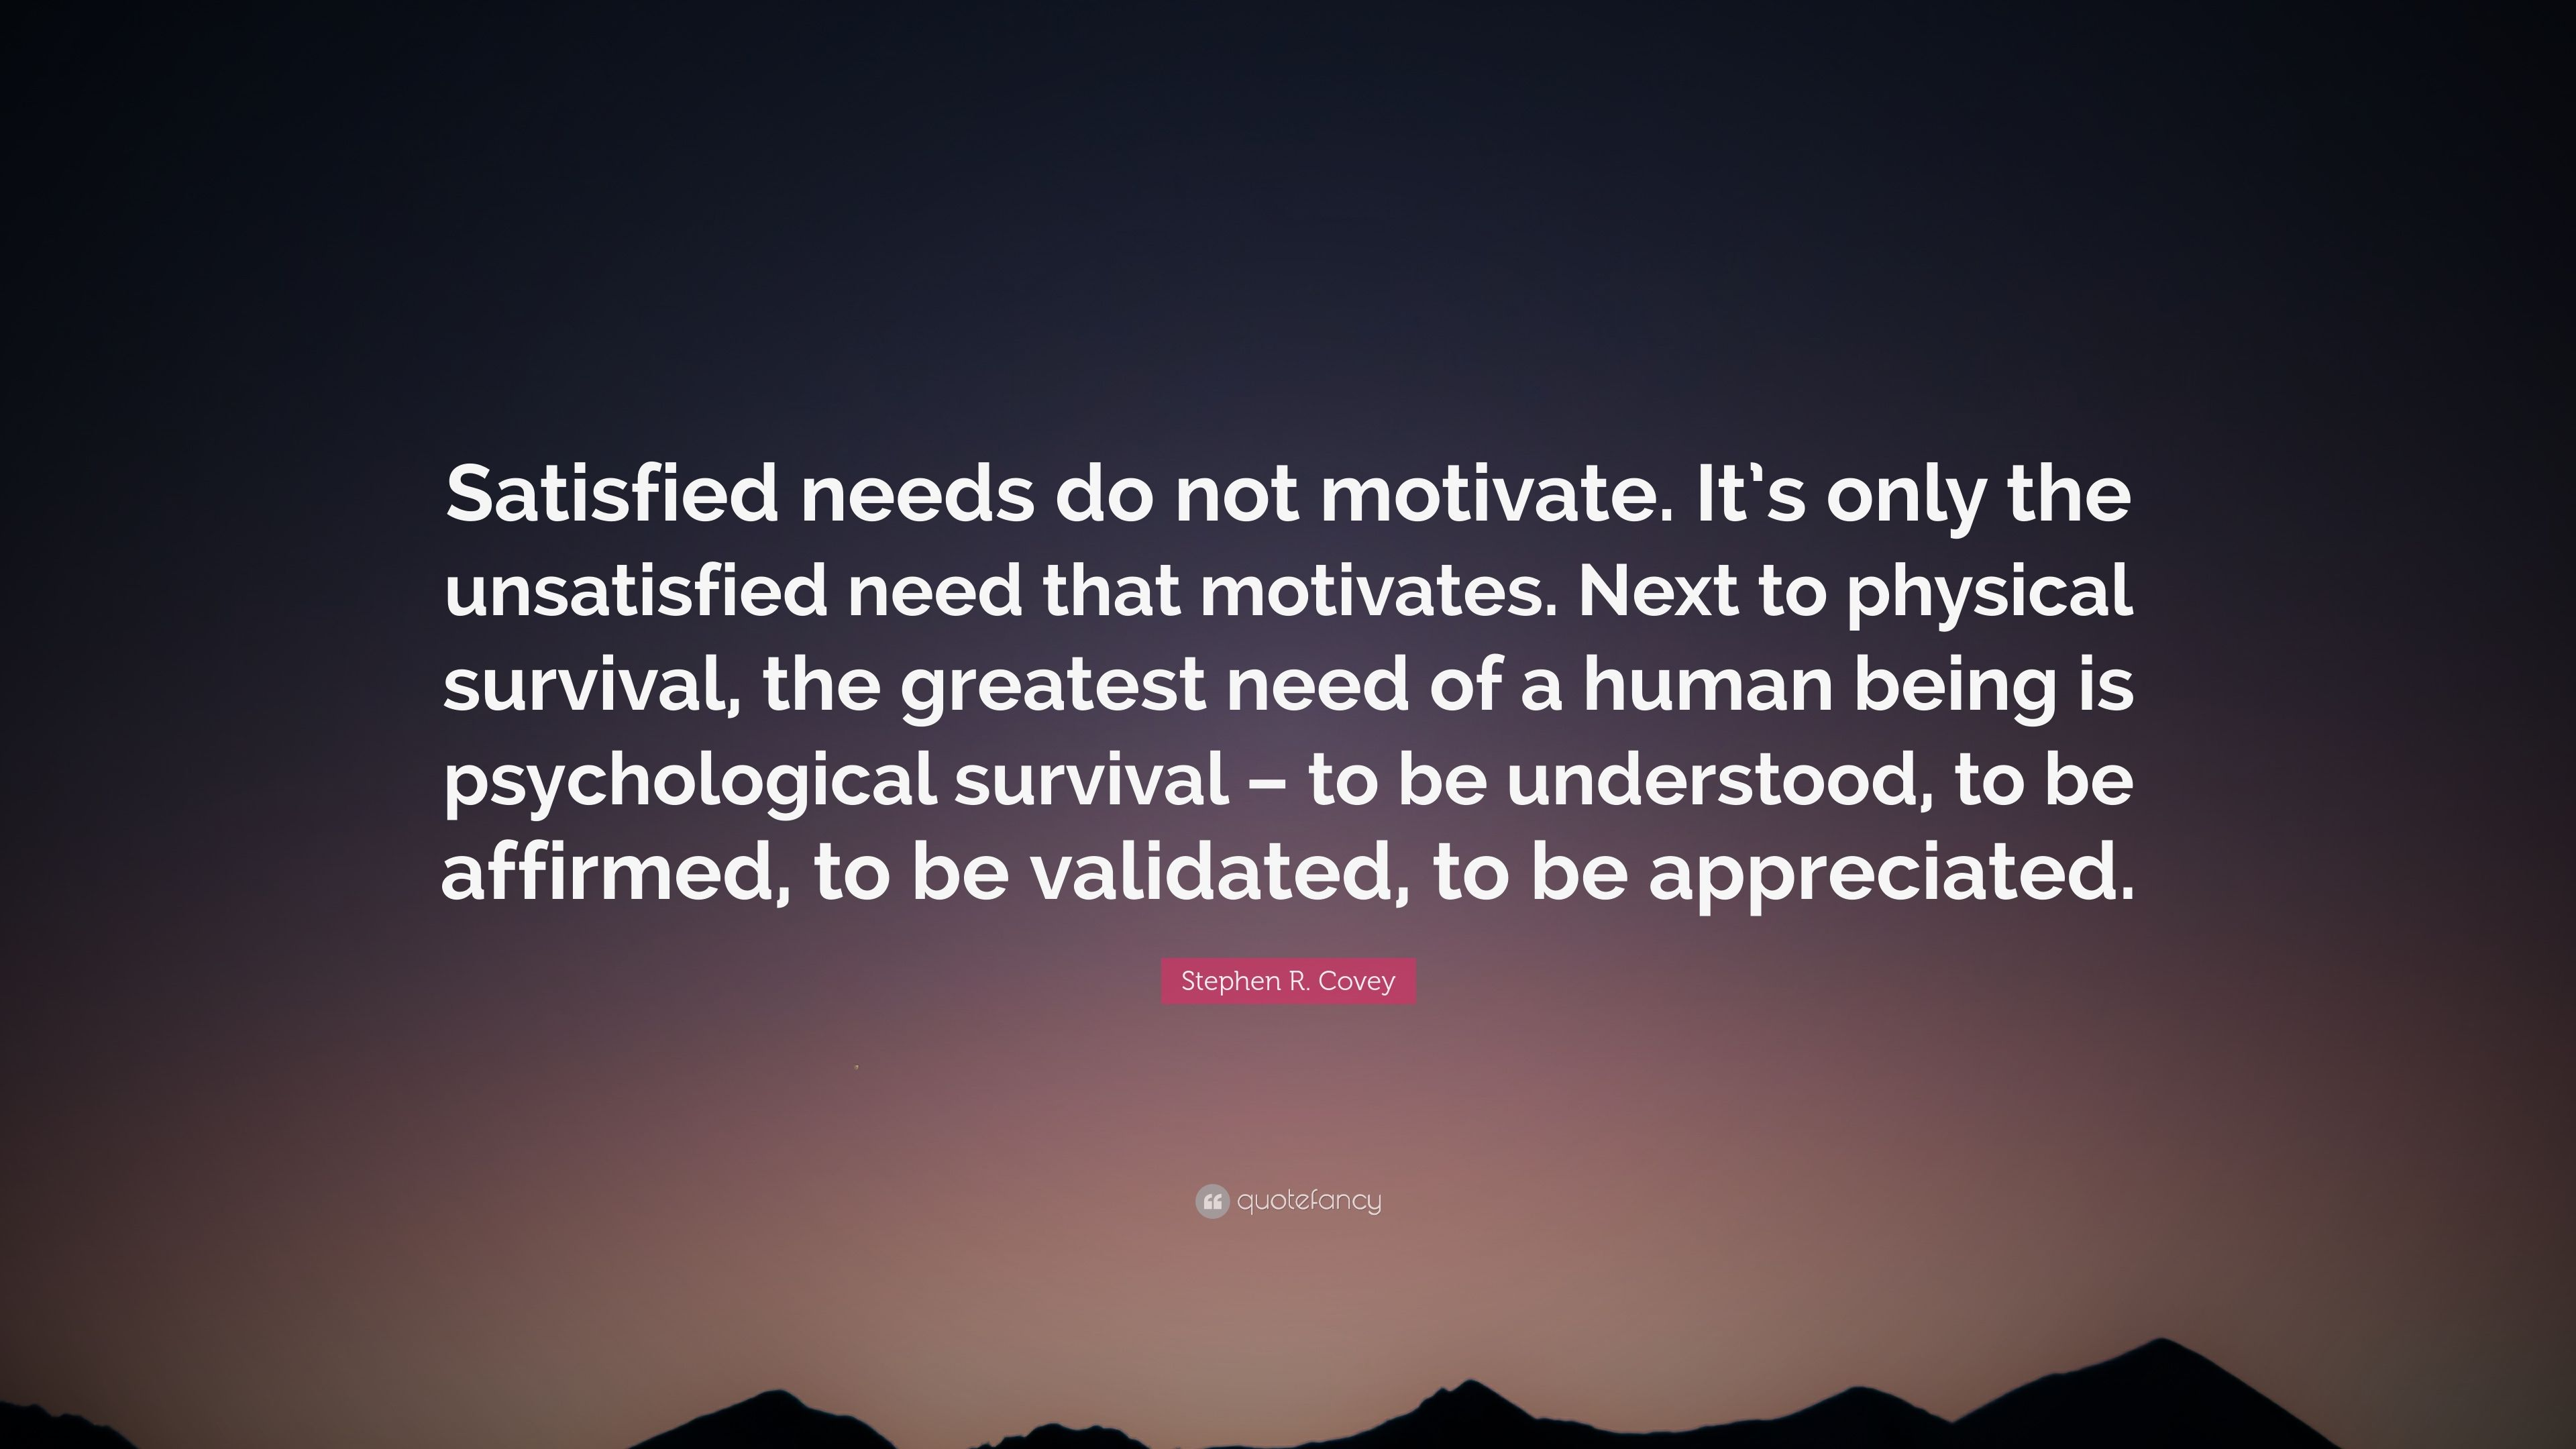 Stephen R Covey Quote Satisfied Needs Do Not Motivate Its Only